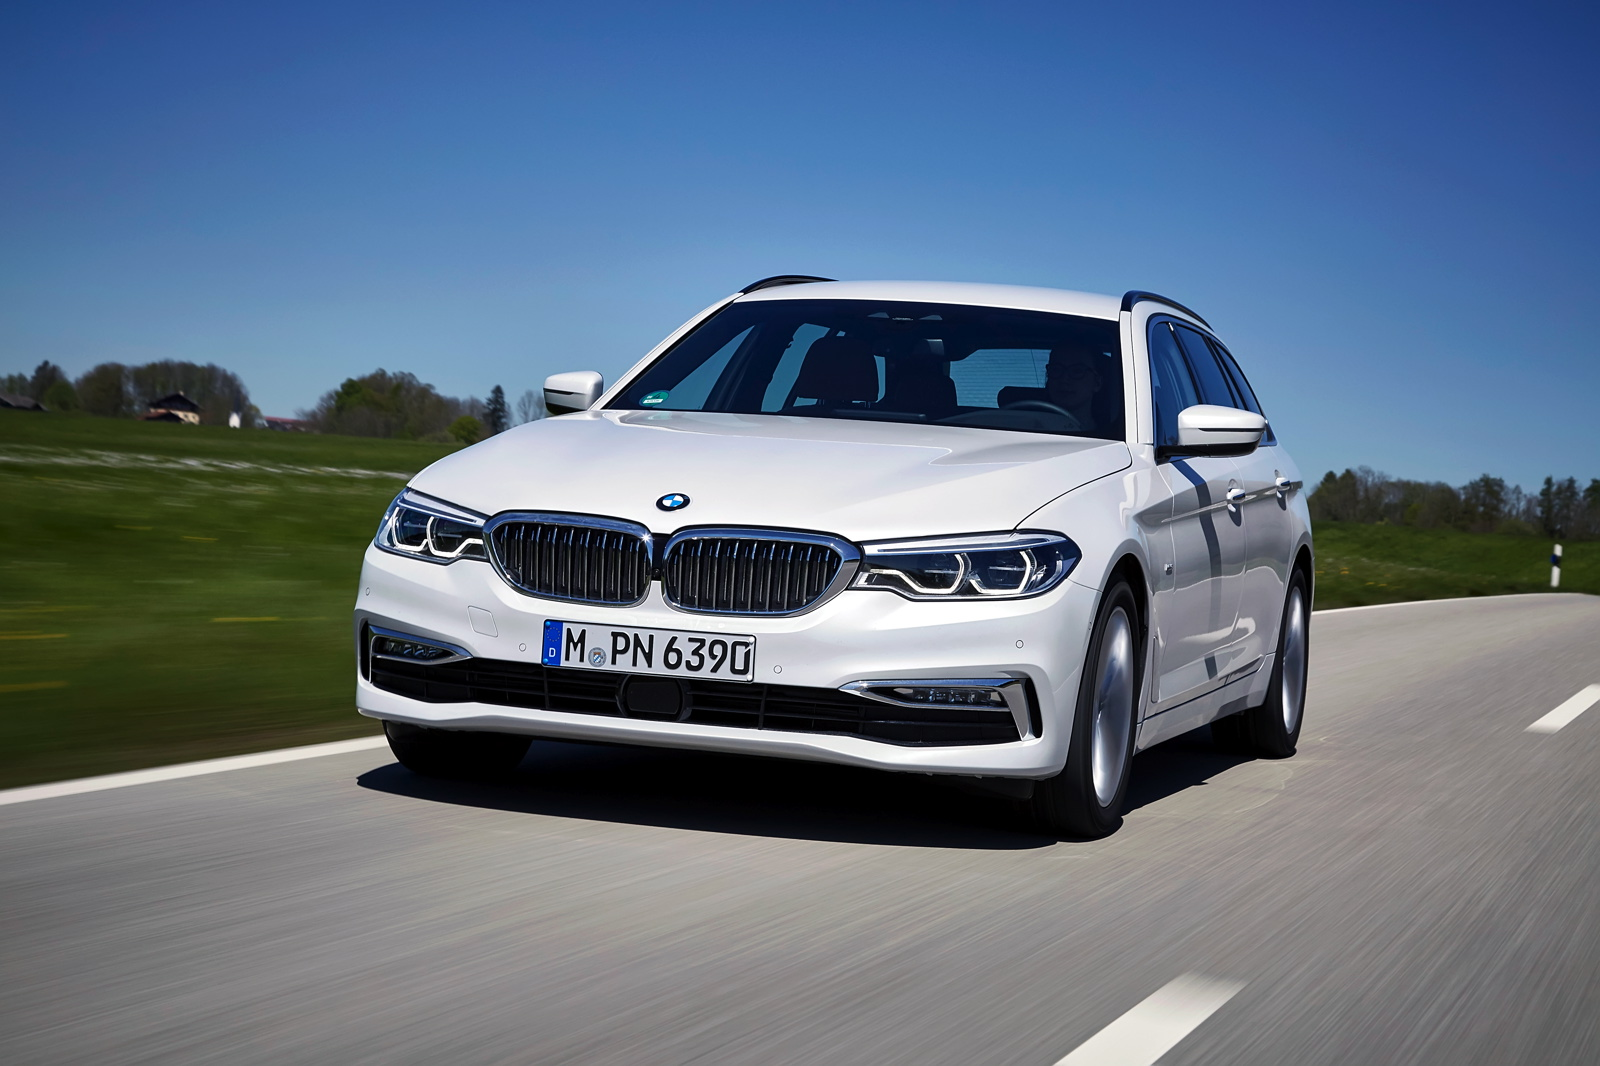 The 2017 BMW 520d Touring Goes For A Photoshoot In Europe